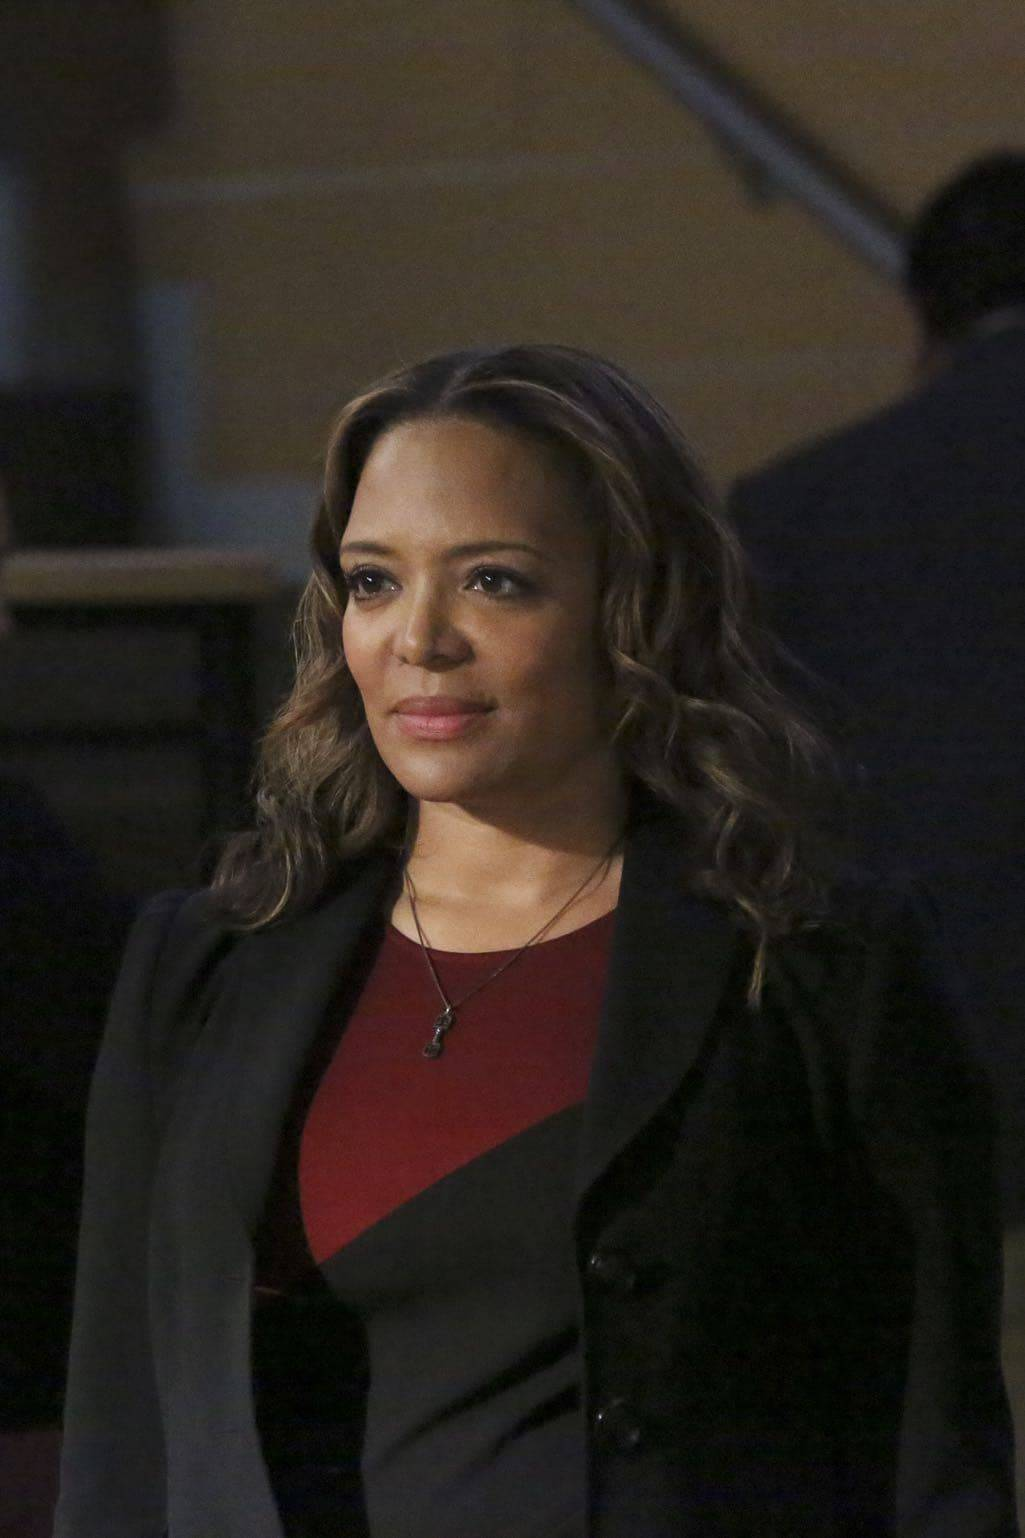 """HOW TO GET AWAY WITH MURDER - """"Is Someone Really Dead?"""" - A revelation in the Wallace Mahoney murder rattles Annalise and the Keating 5, as the team takes on the case of a veteran facing assault charges, on """"How to Get Away with Murder,"""" THURSDAY, OCTOBER 27 (10:00-11:00 p.m. EDT), on the ABC Television Network. (ABC/Mitch Haaseth) LAUREN LUNA VELEZ"""